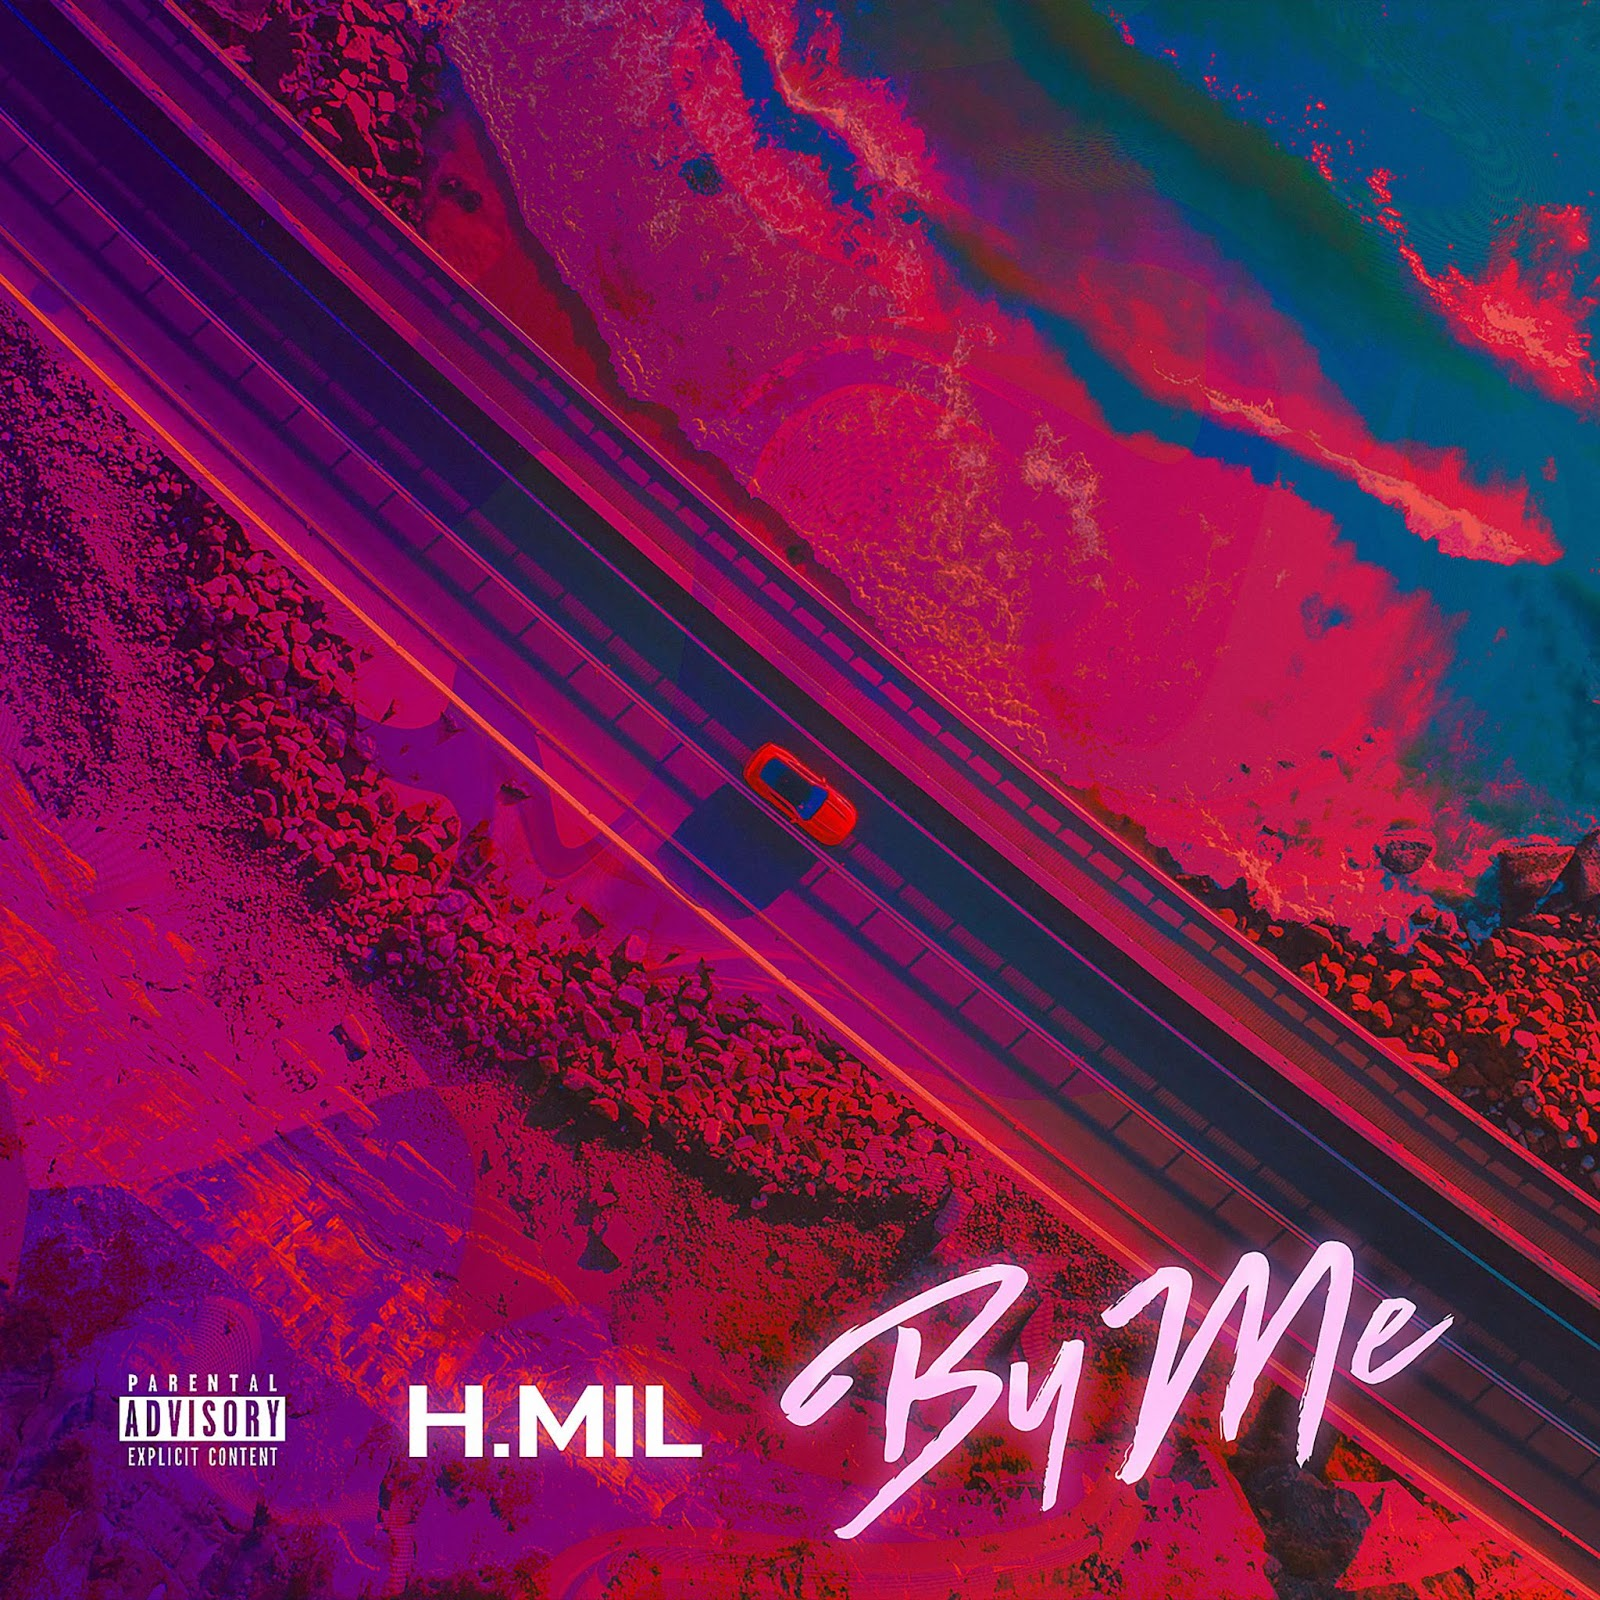 H.Mil Releases New Single 'By Me'